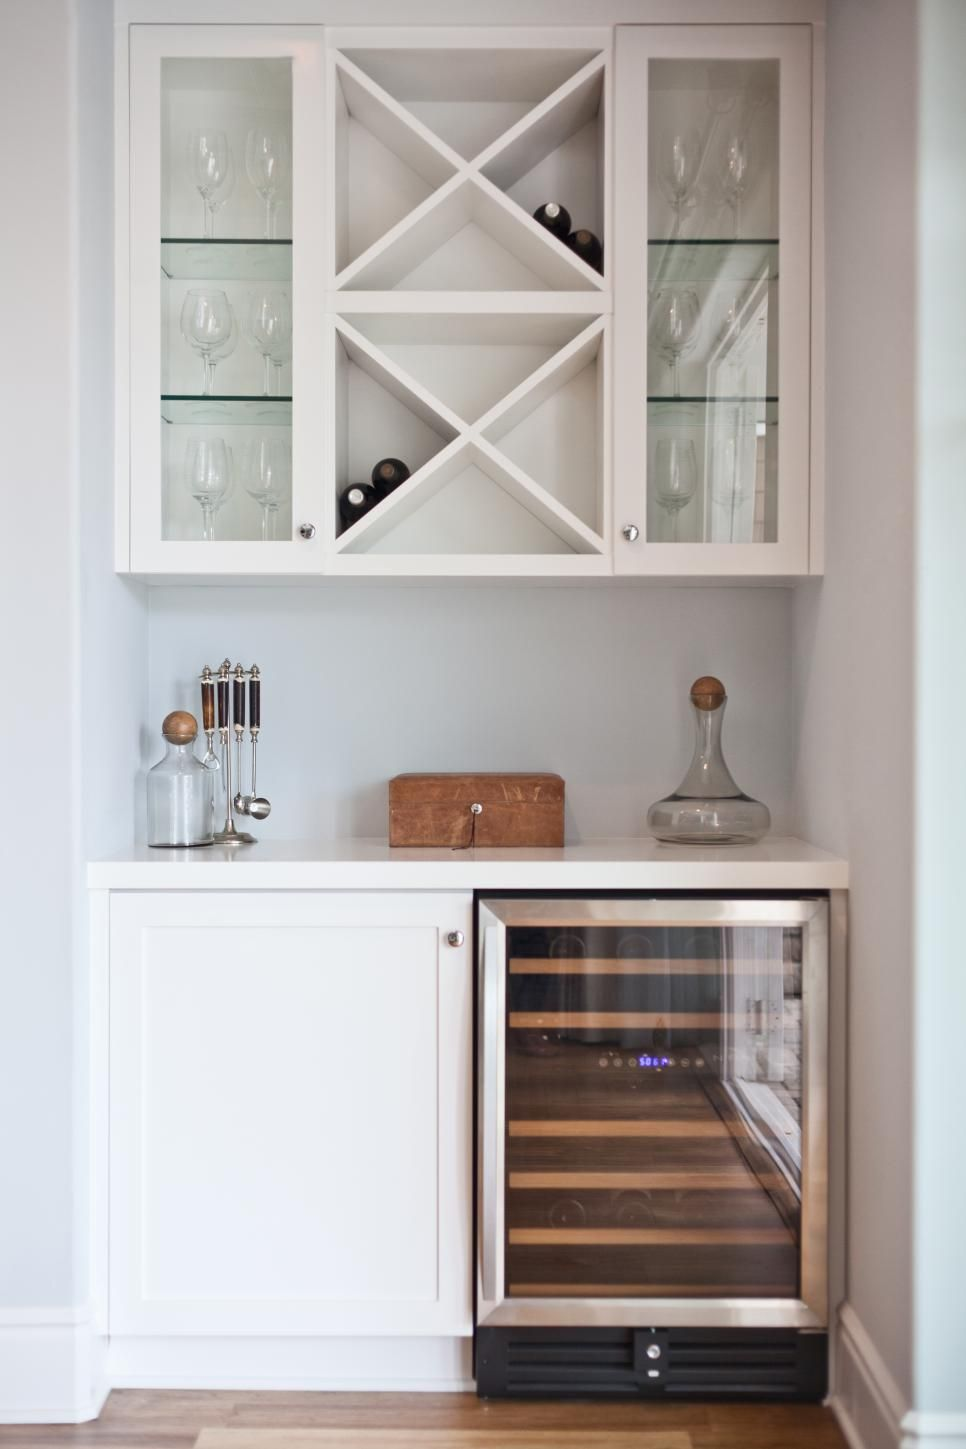 A Clean And Organized Dry Bar Is Great Option For Small Nook Here Wine Refrigerator Cabinet Create The Base Of Above Built In Shelving